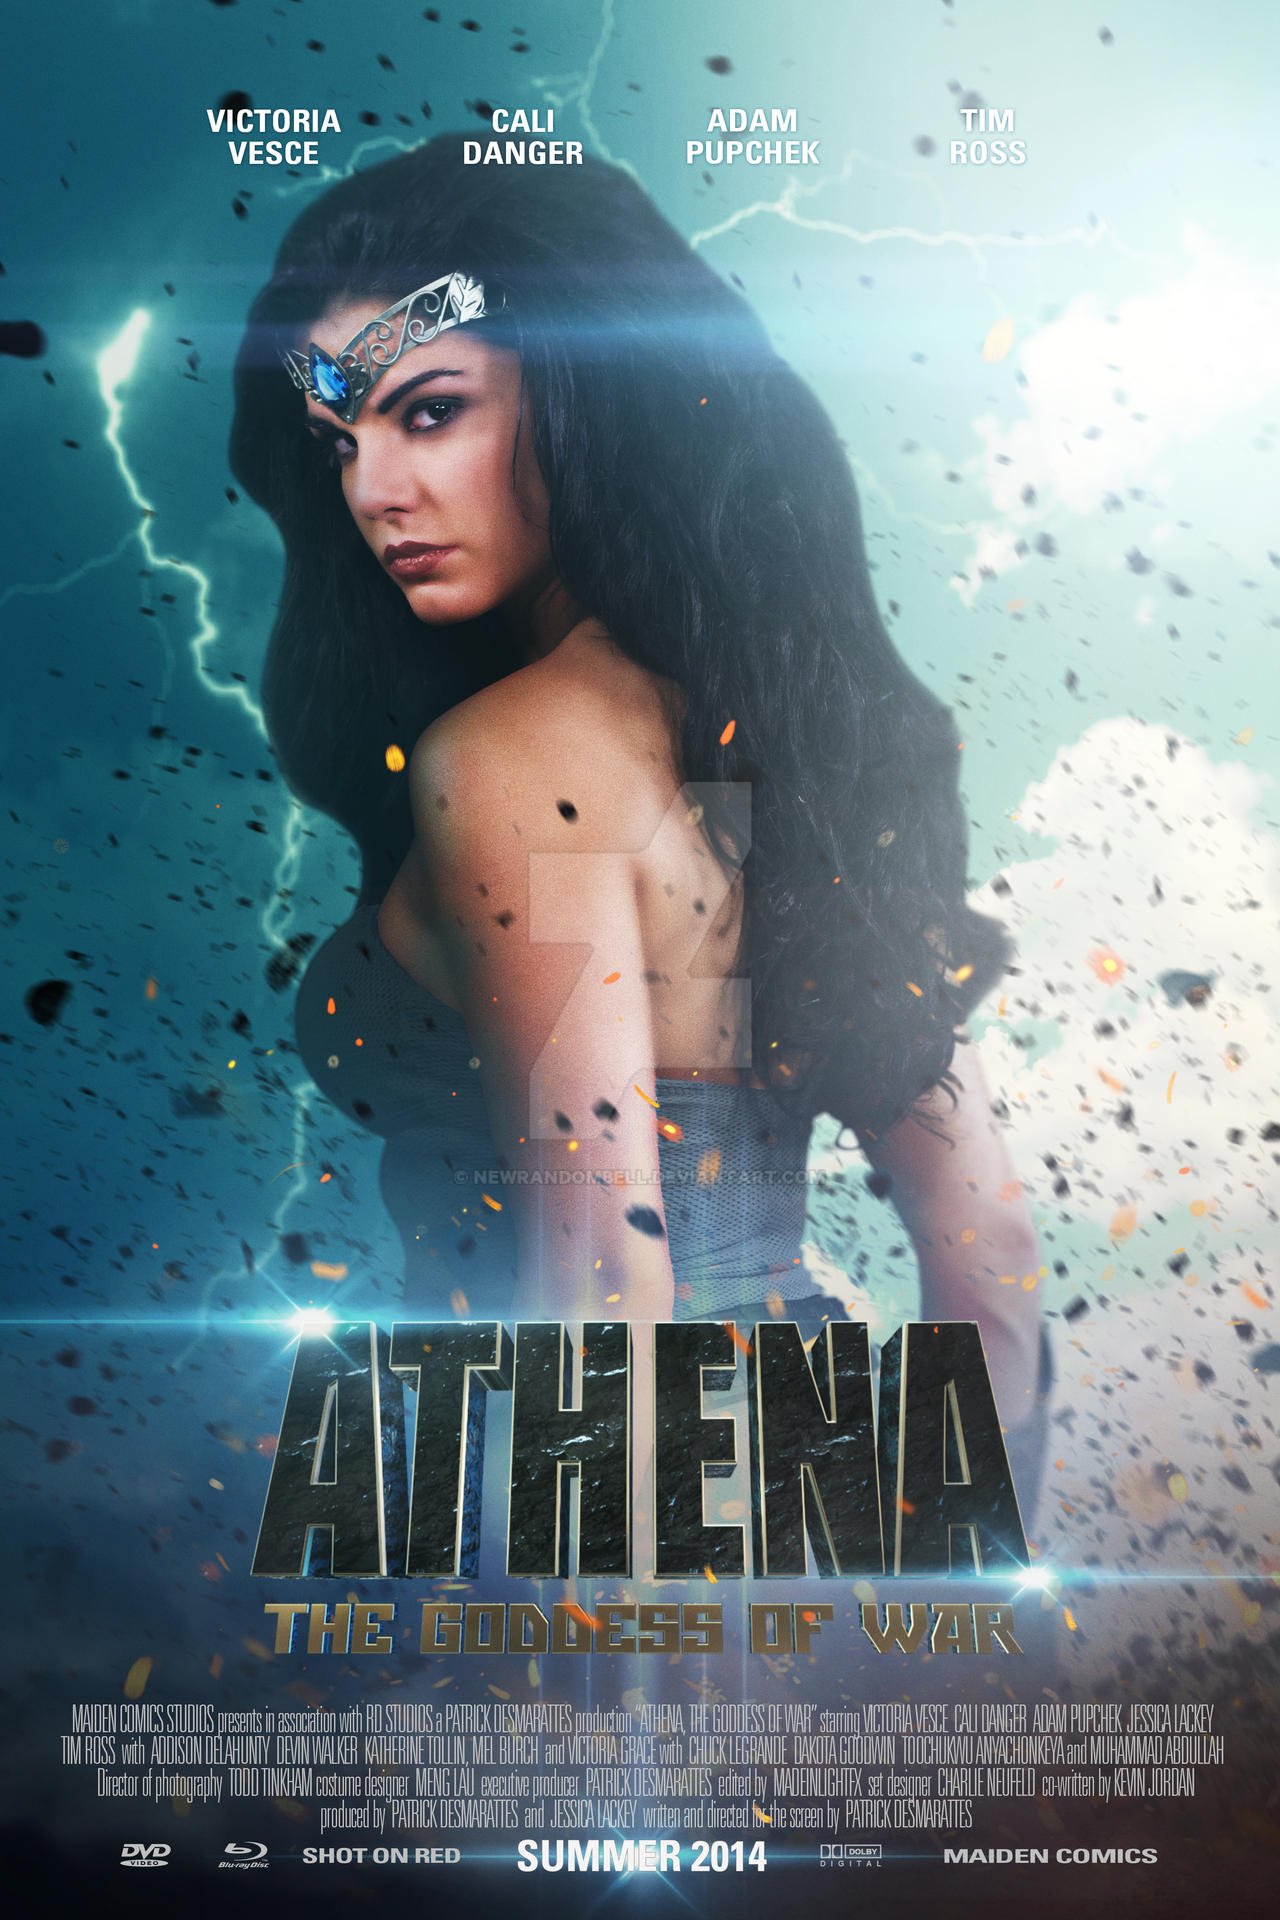 Athena The Goddess of War - Character Poster 2 by NewRandombell